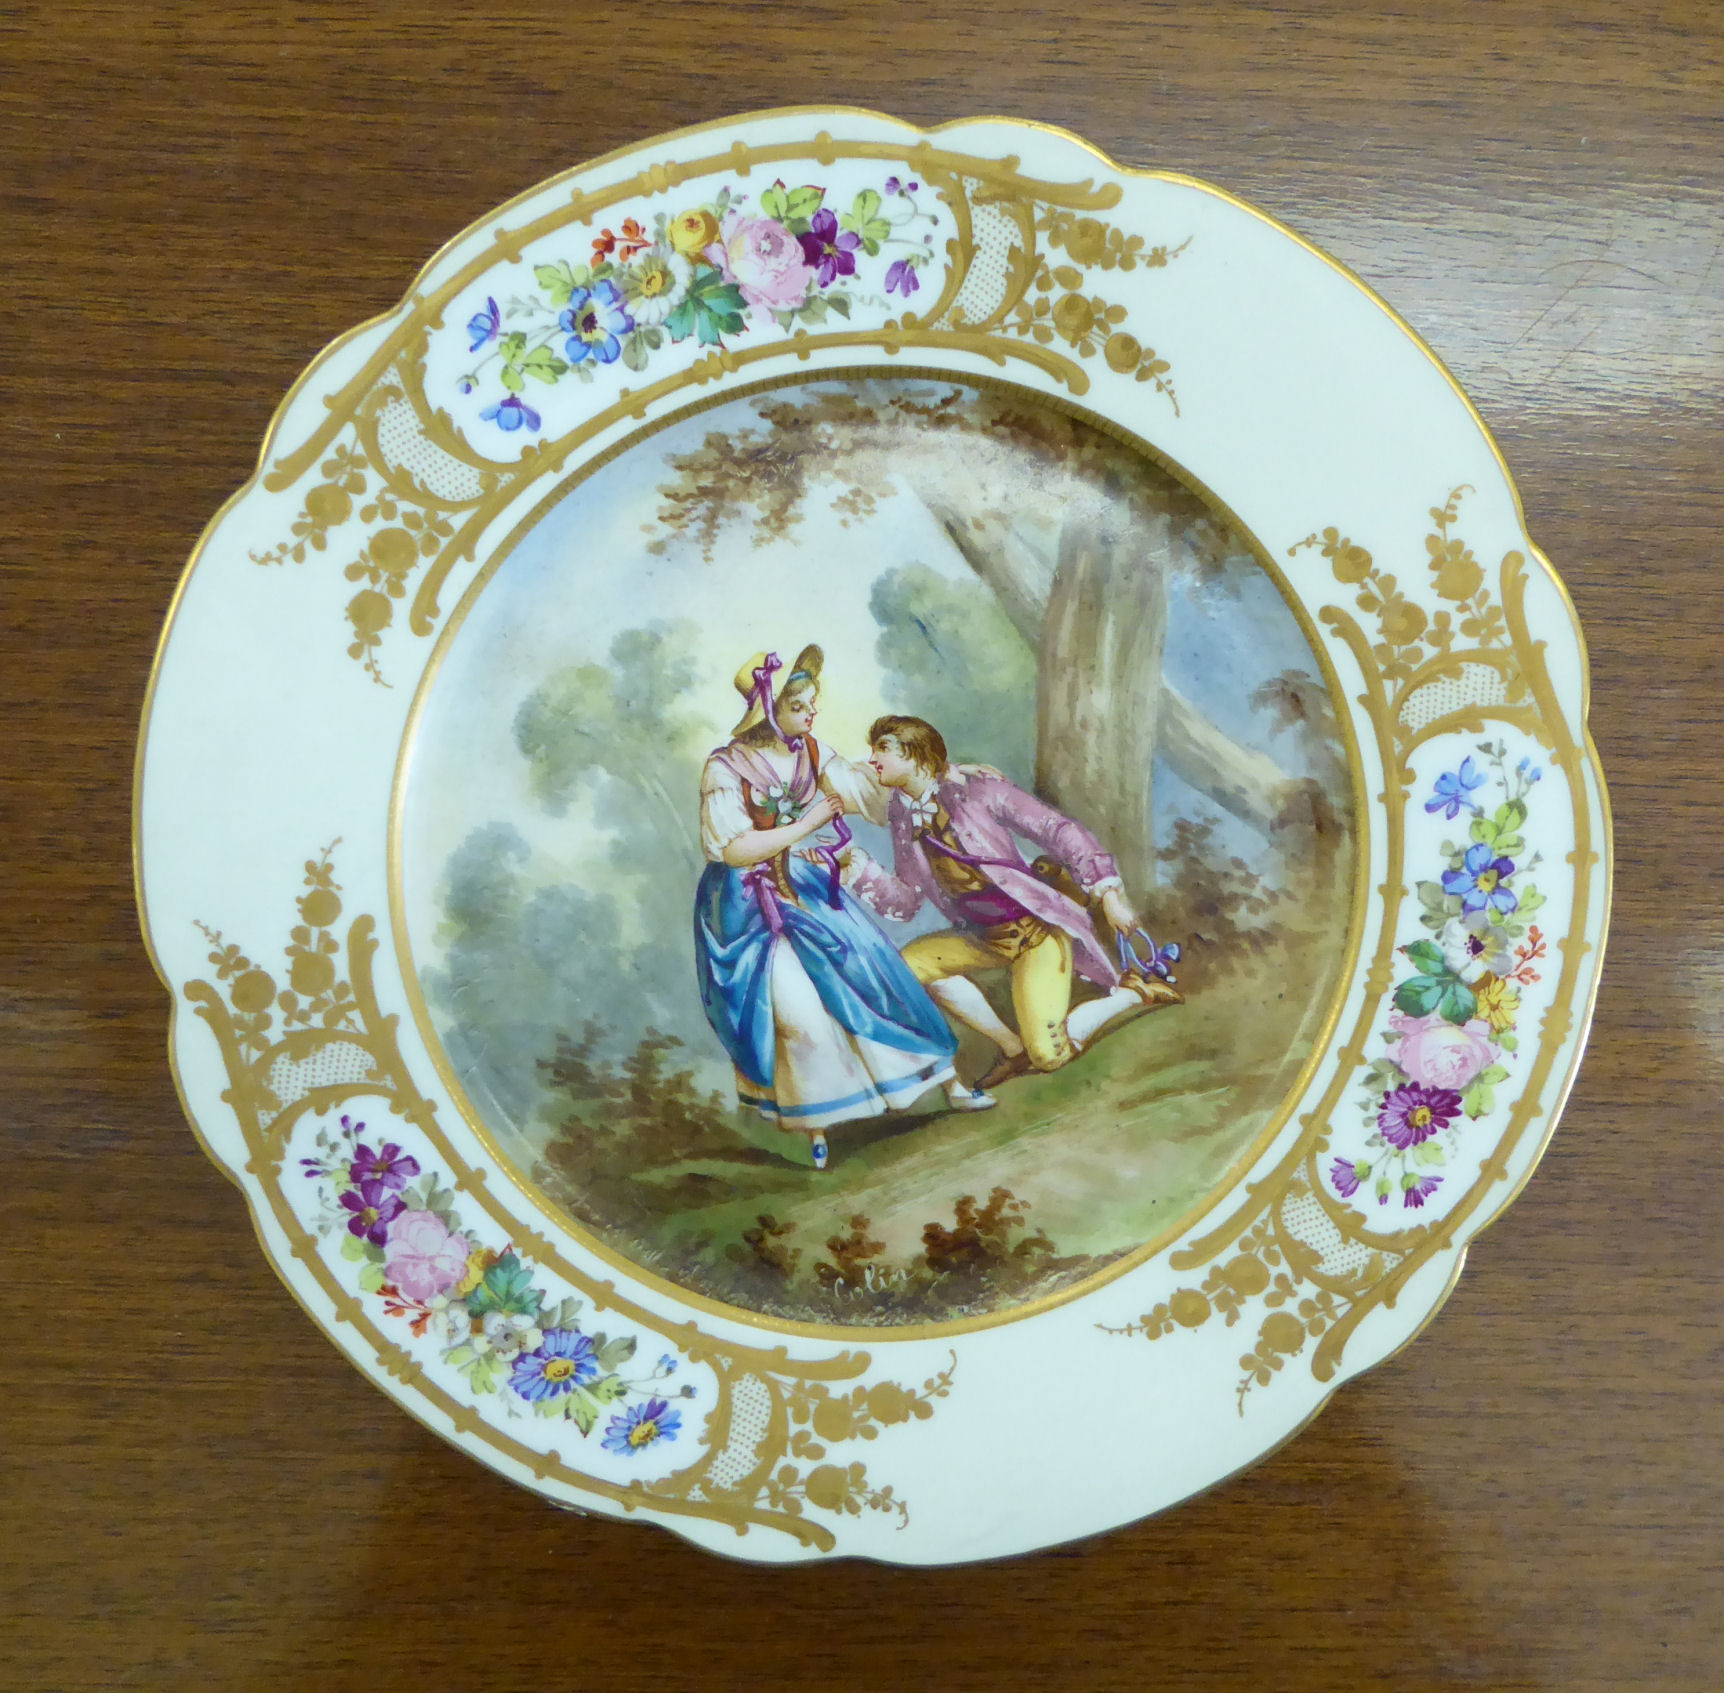 Lot 3 - A mid 19thC Sevres porcelain wavy edge plate, featuring a romantic scene,